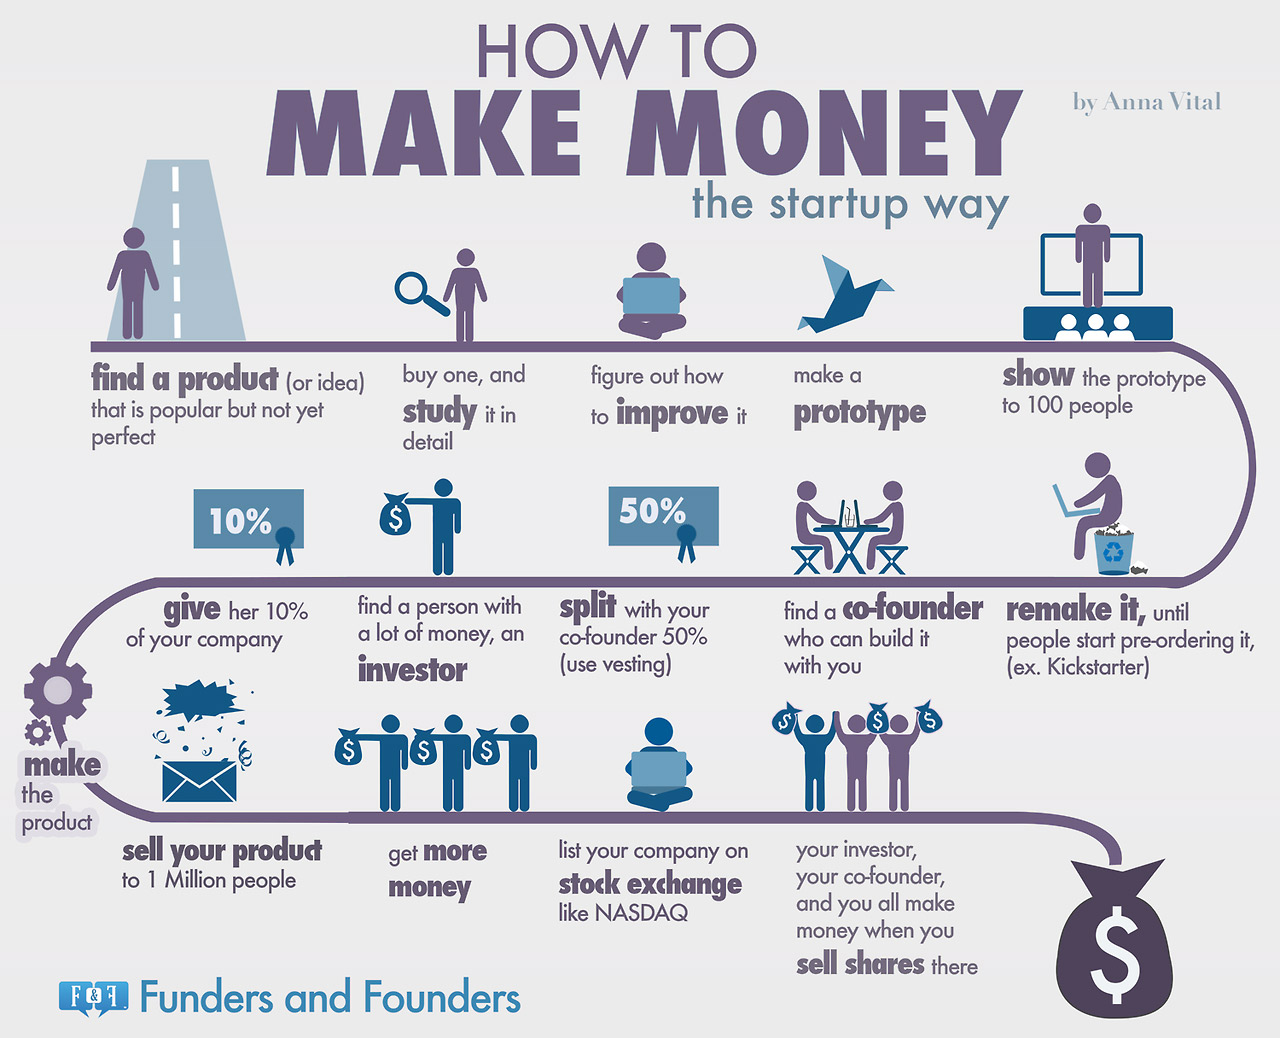 How to make money with a real estate startup infographic 1397168889 formula startups use make billions infographic pooptronica